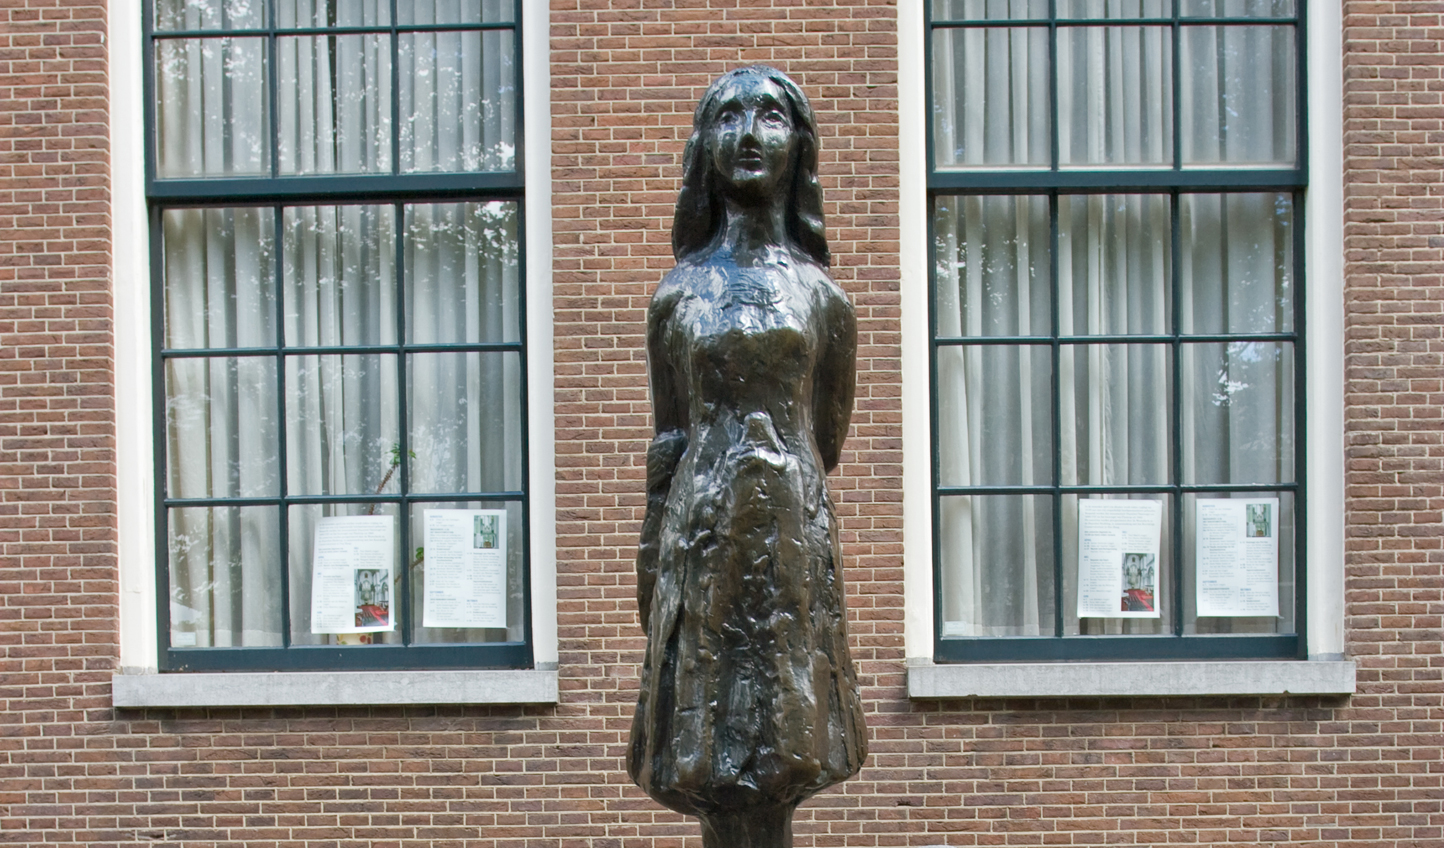 Pay a visit to the Anne Frank Huis for fascinating insight into the diarist's short life